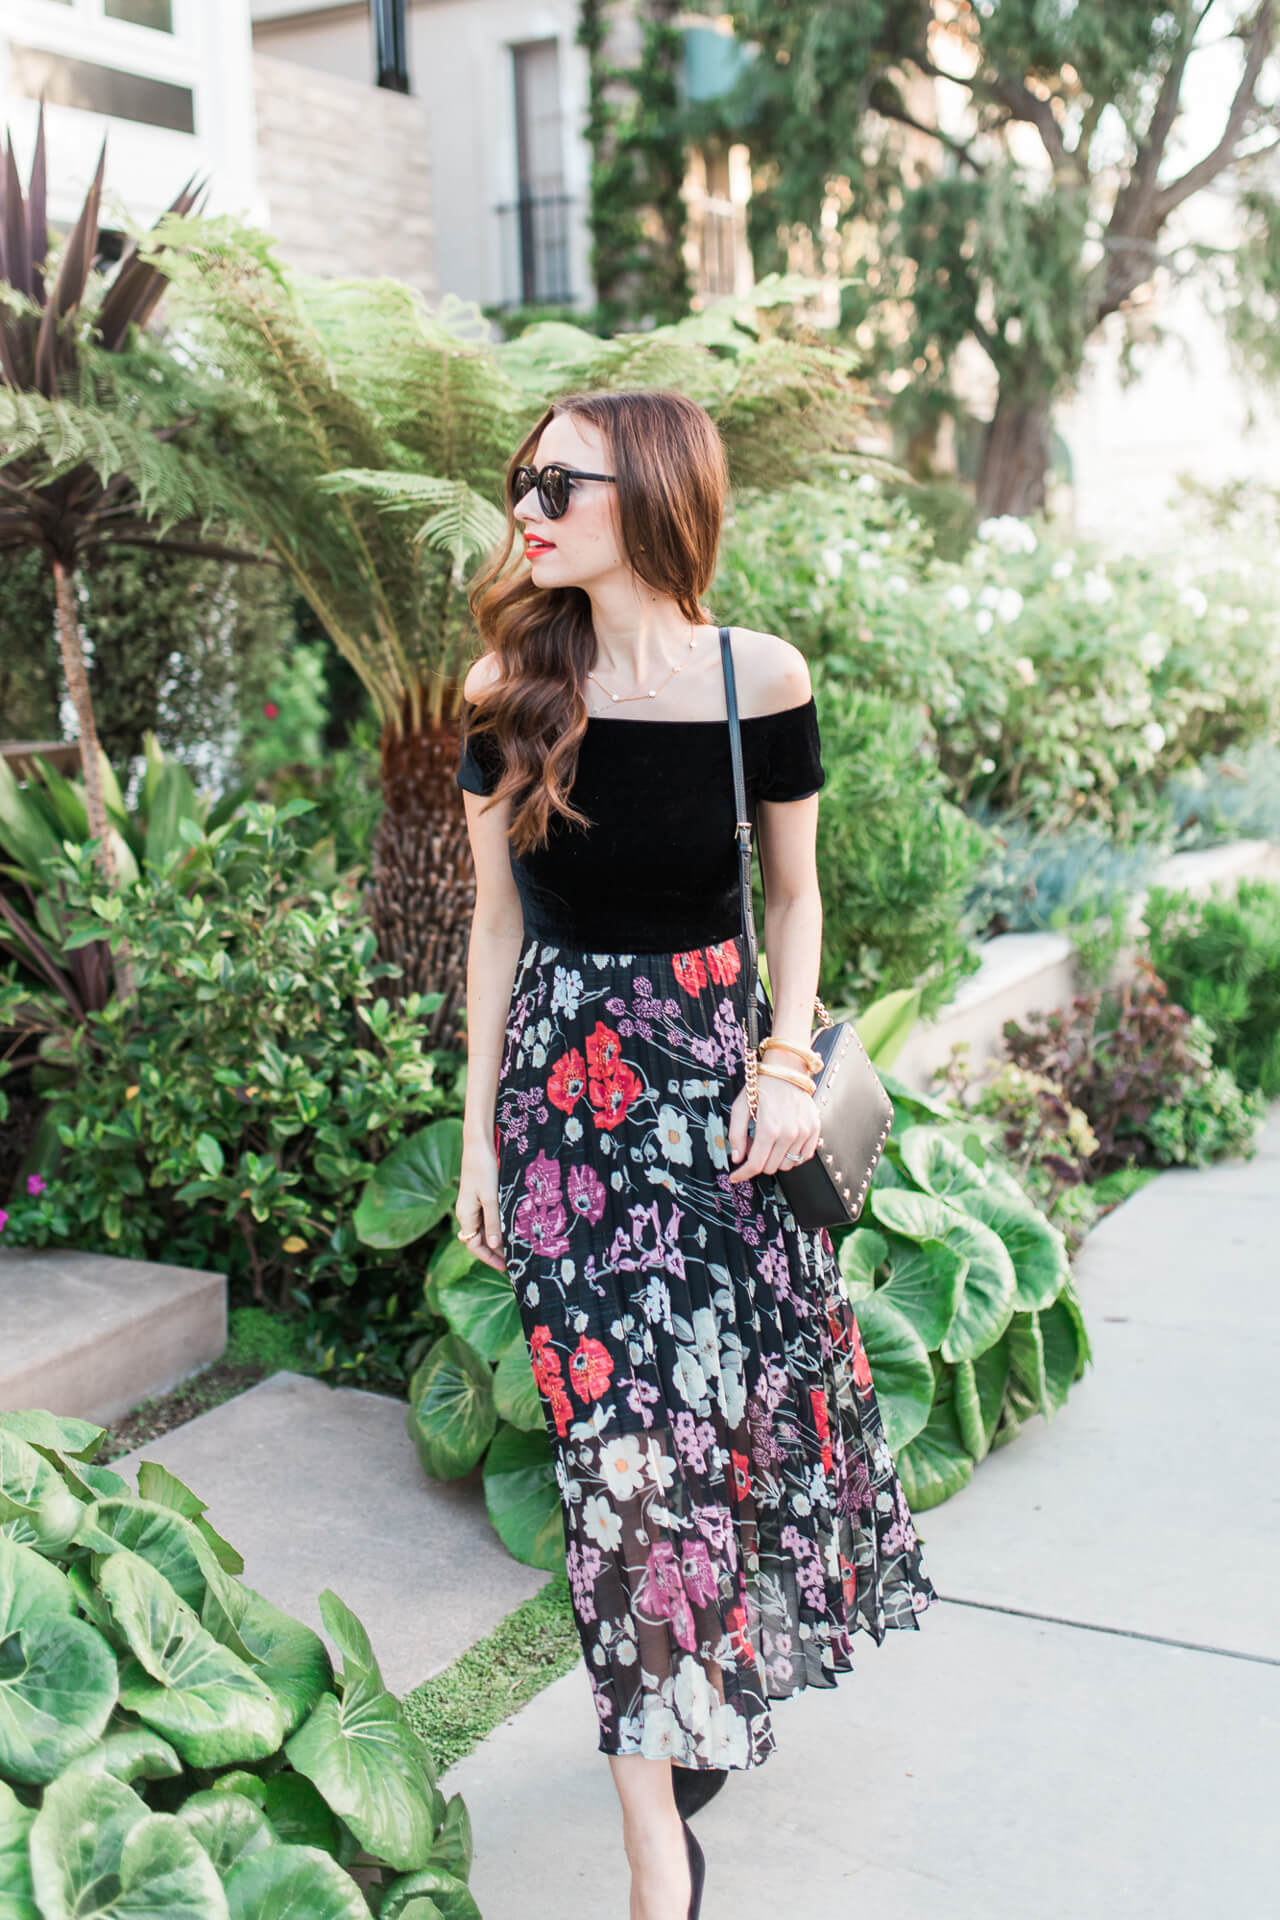 Love this darling floral look with cute sunnies